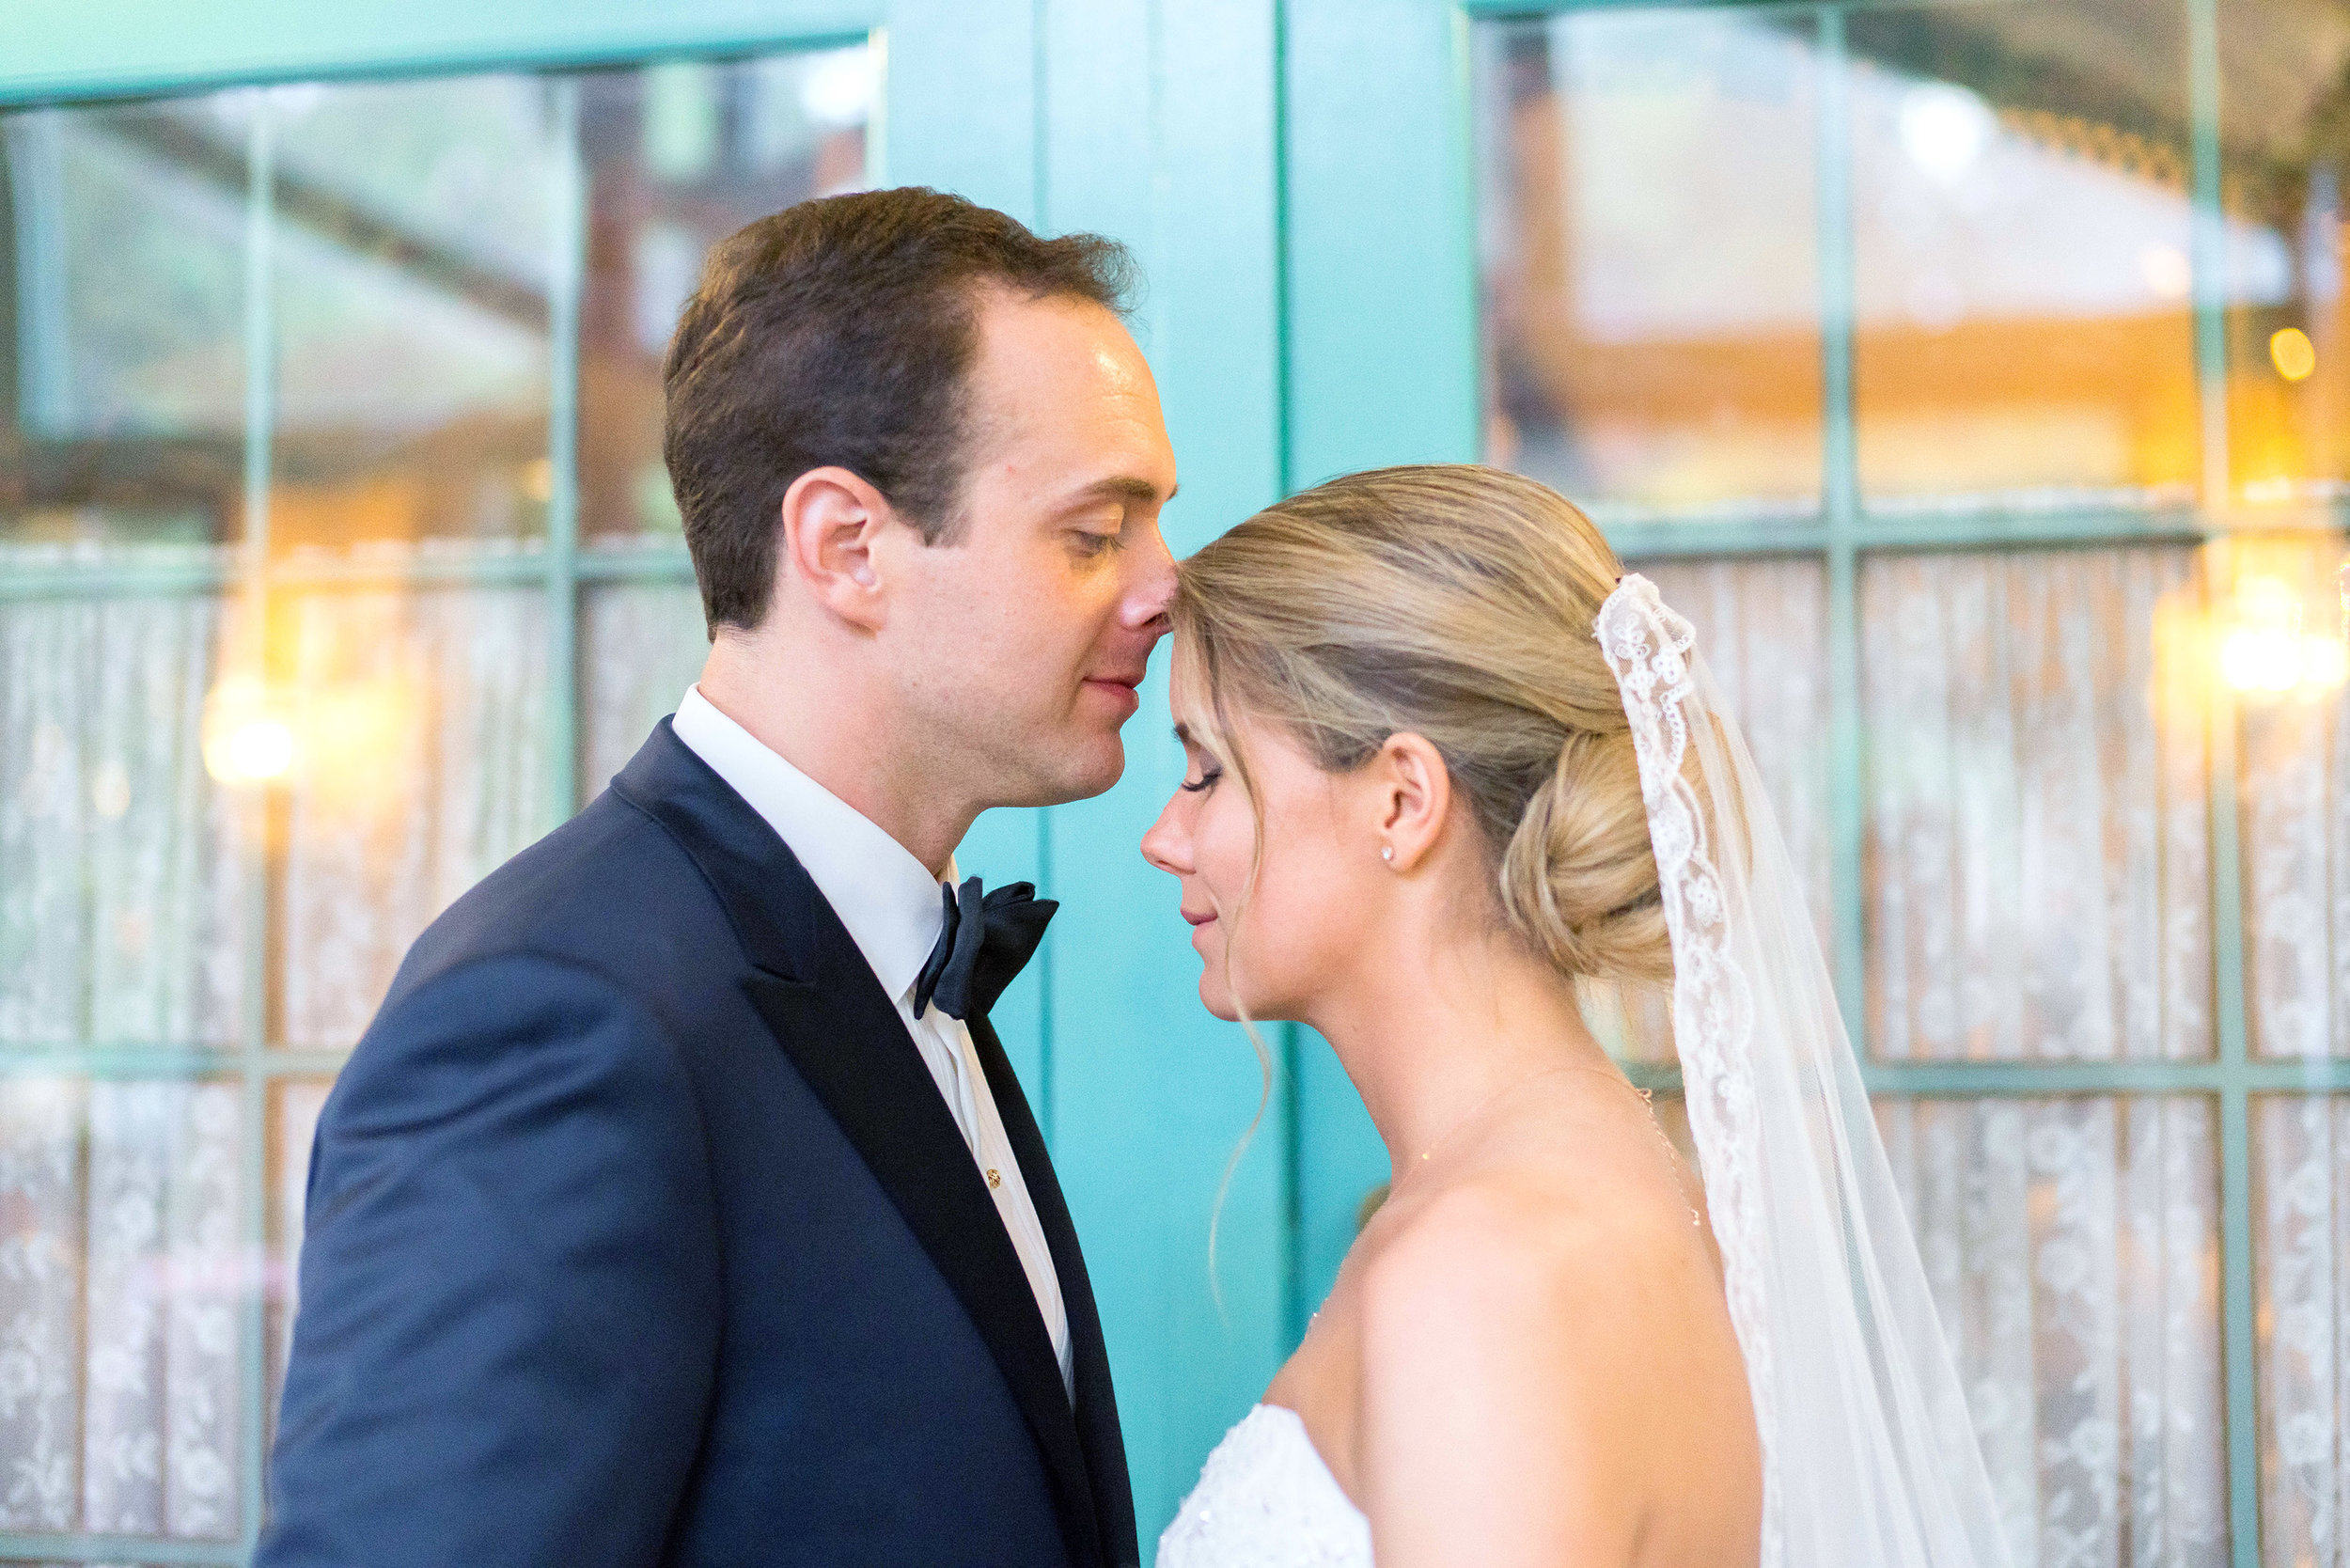 Bride and groom portraits in chevy chase maryland